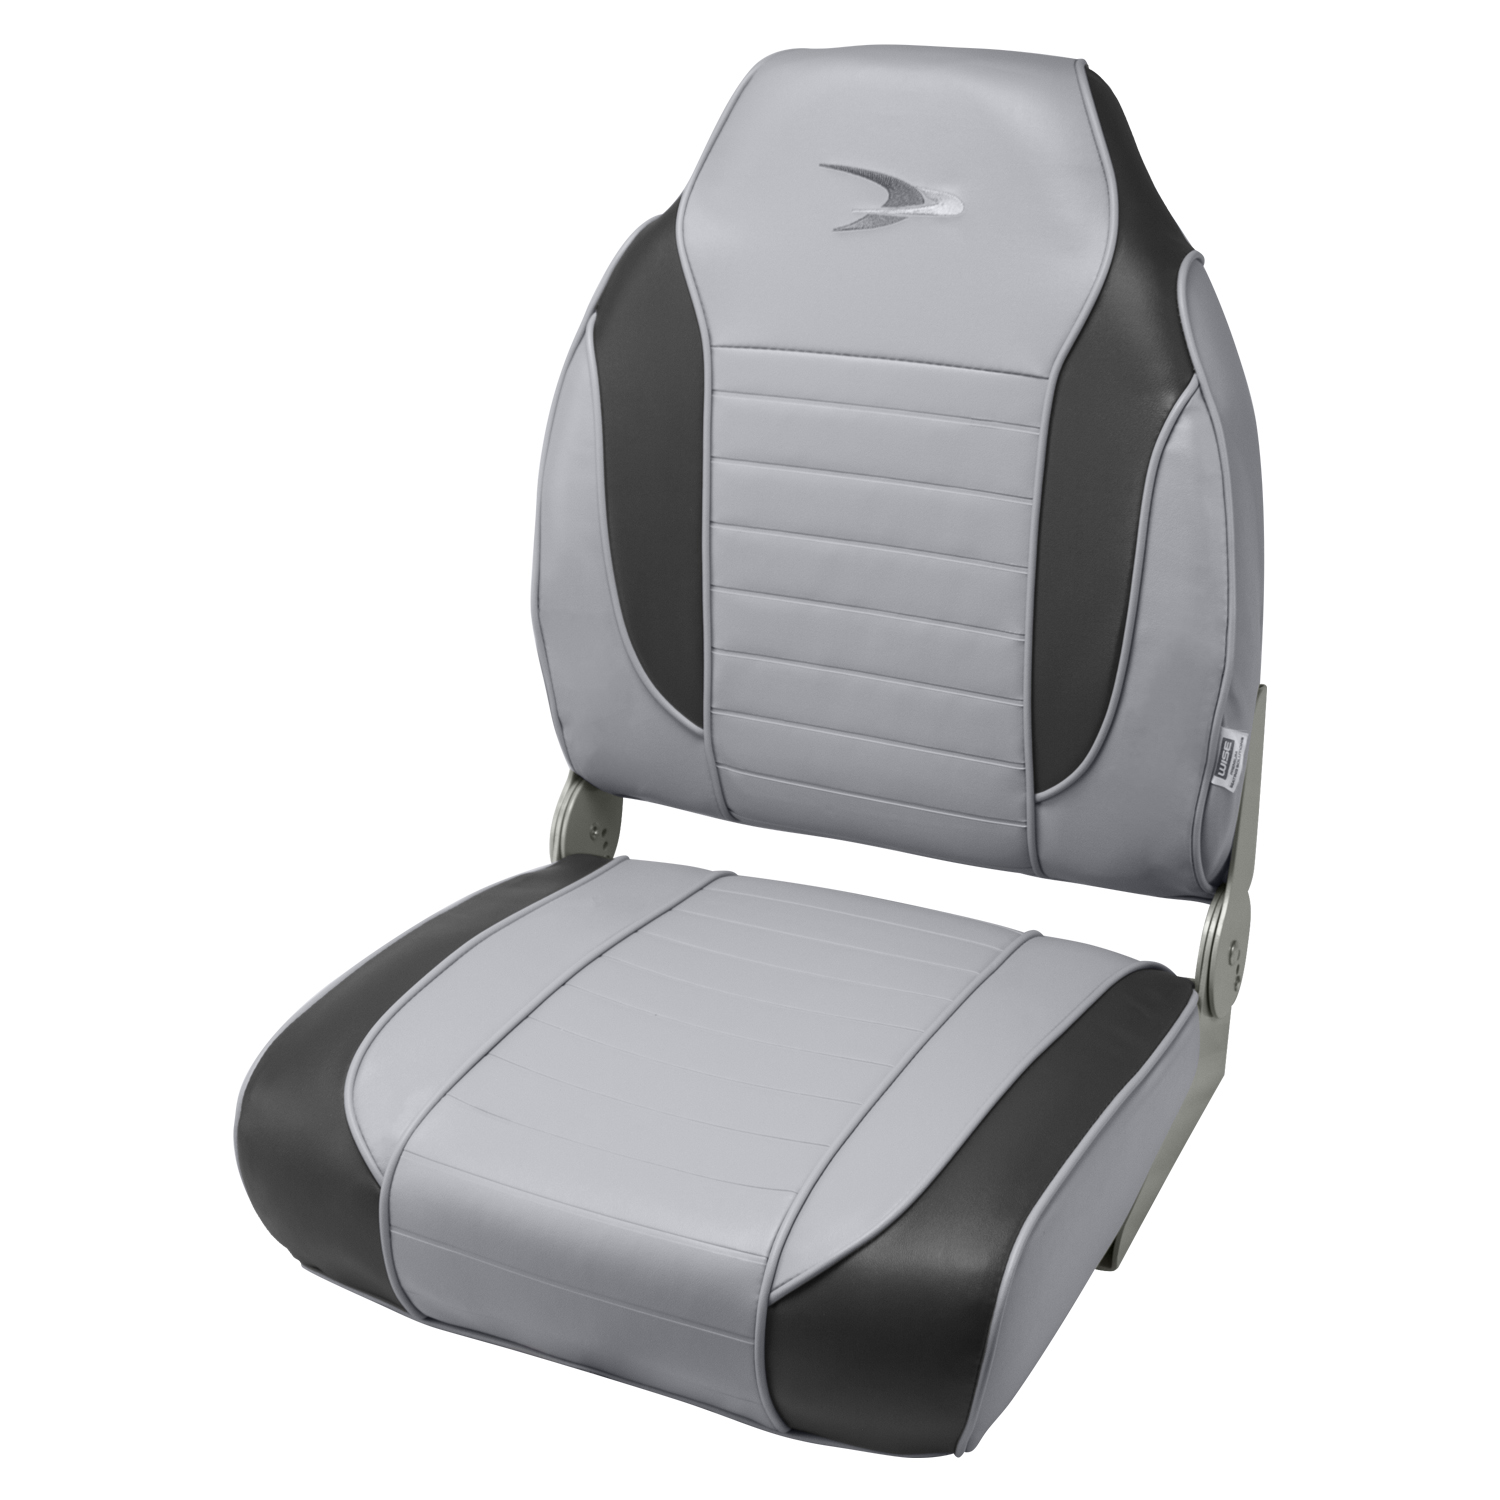 Wise 8WD892PLS Series Striped High Back Boat Seat